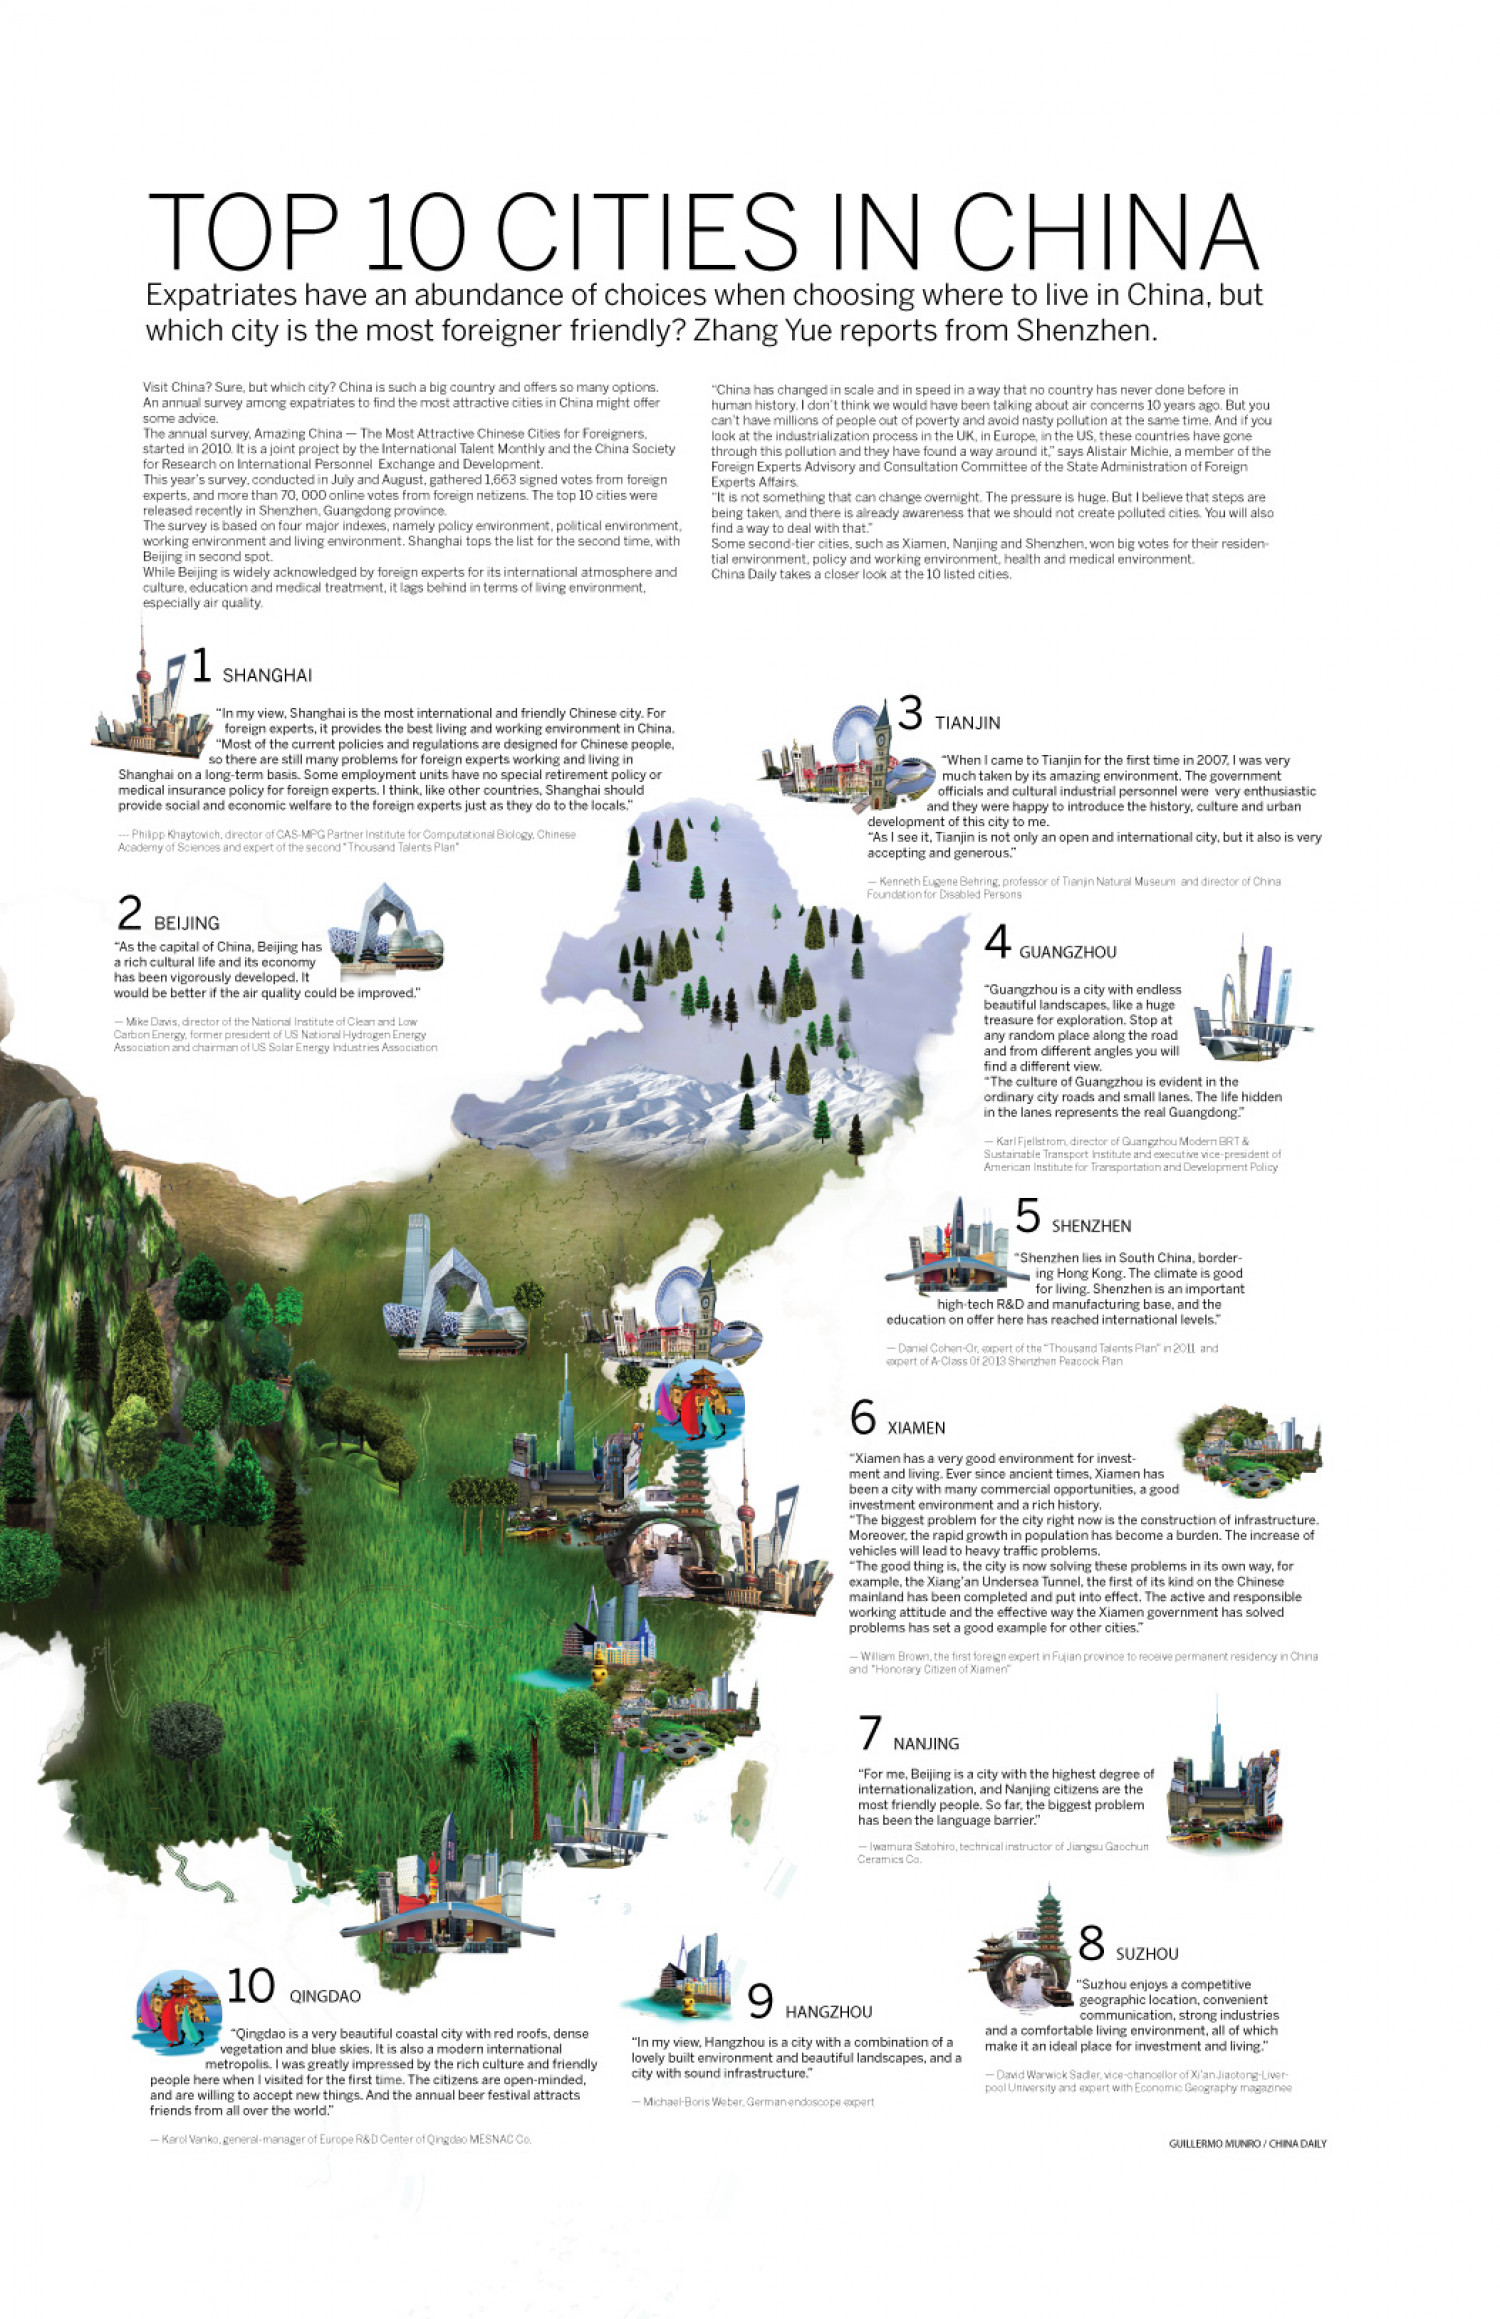 THE 10 BEST CITIES IN CHINA Infographic